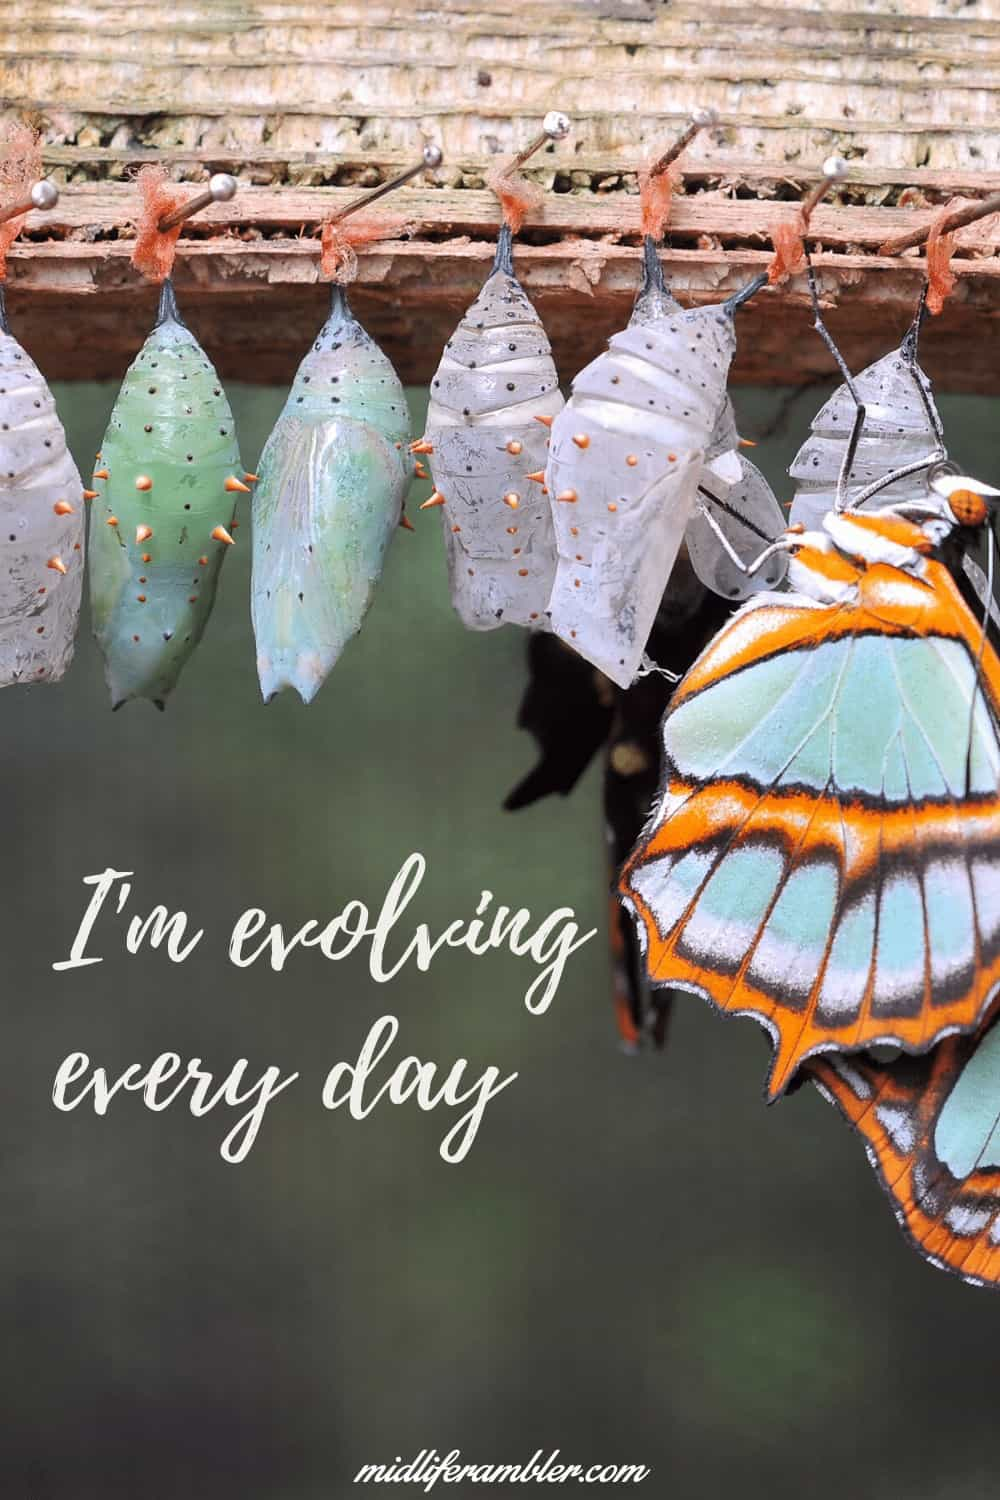 Affirmations for Self-Compassion - I'm evolving every day.